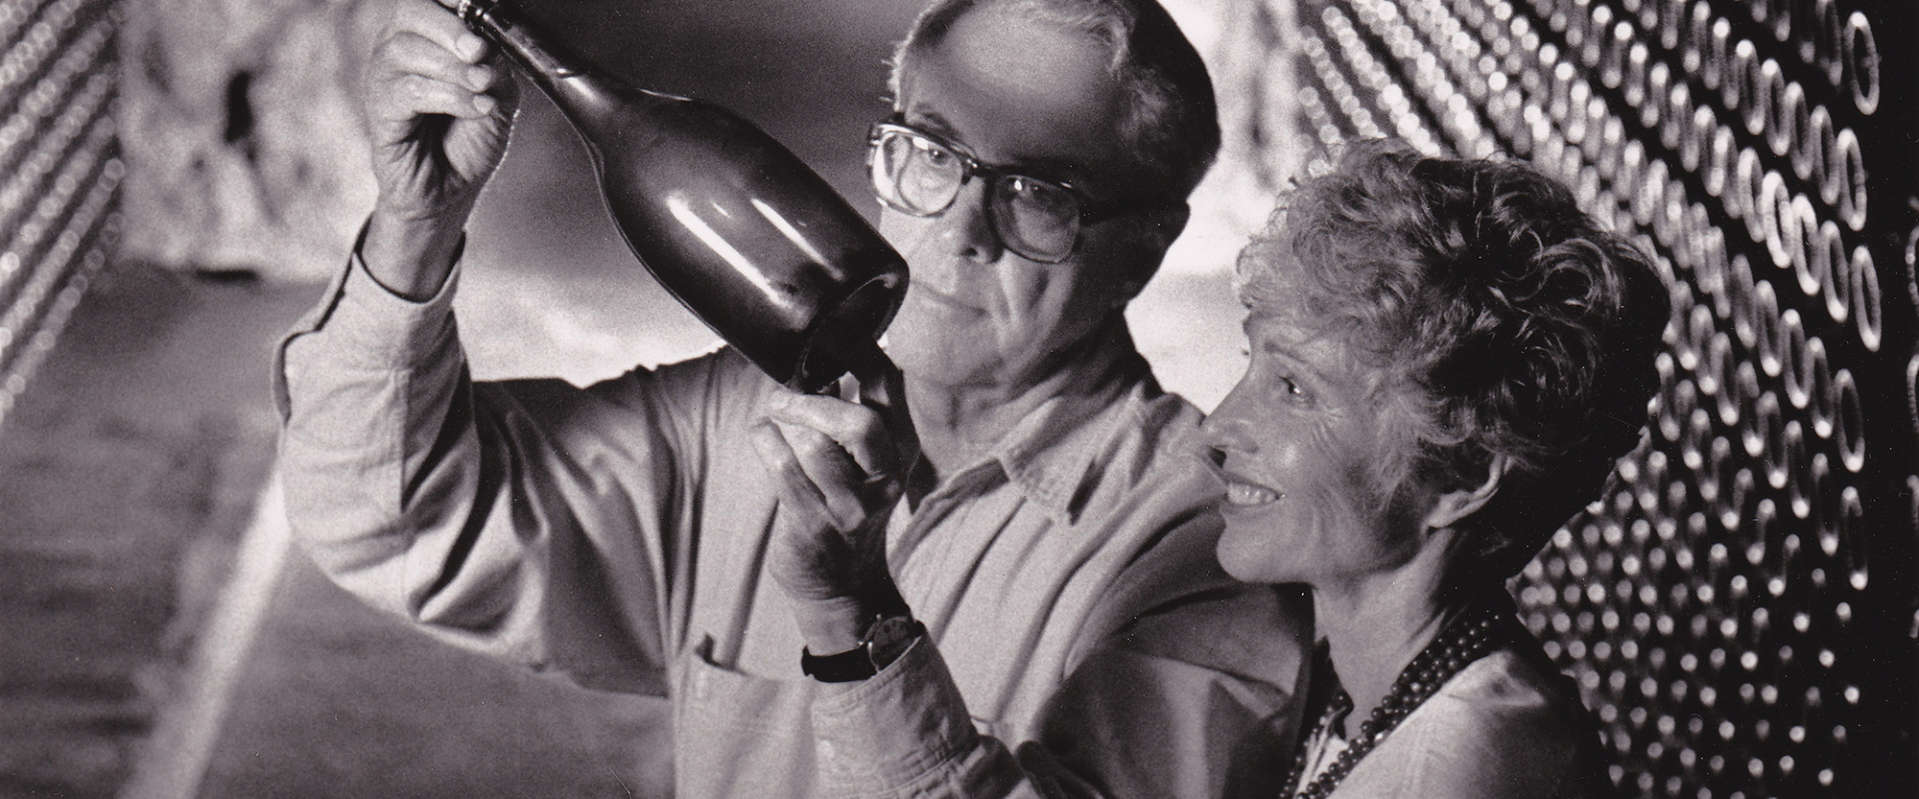 Jack and Jamie Davies inspect a bottle of sparkling wine in Schramsberg's historic wine caves circa 1980